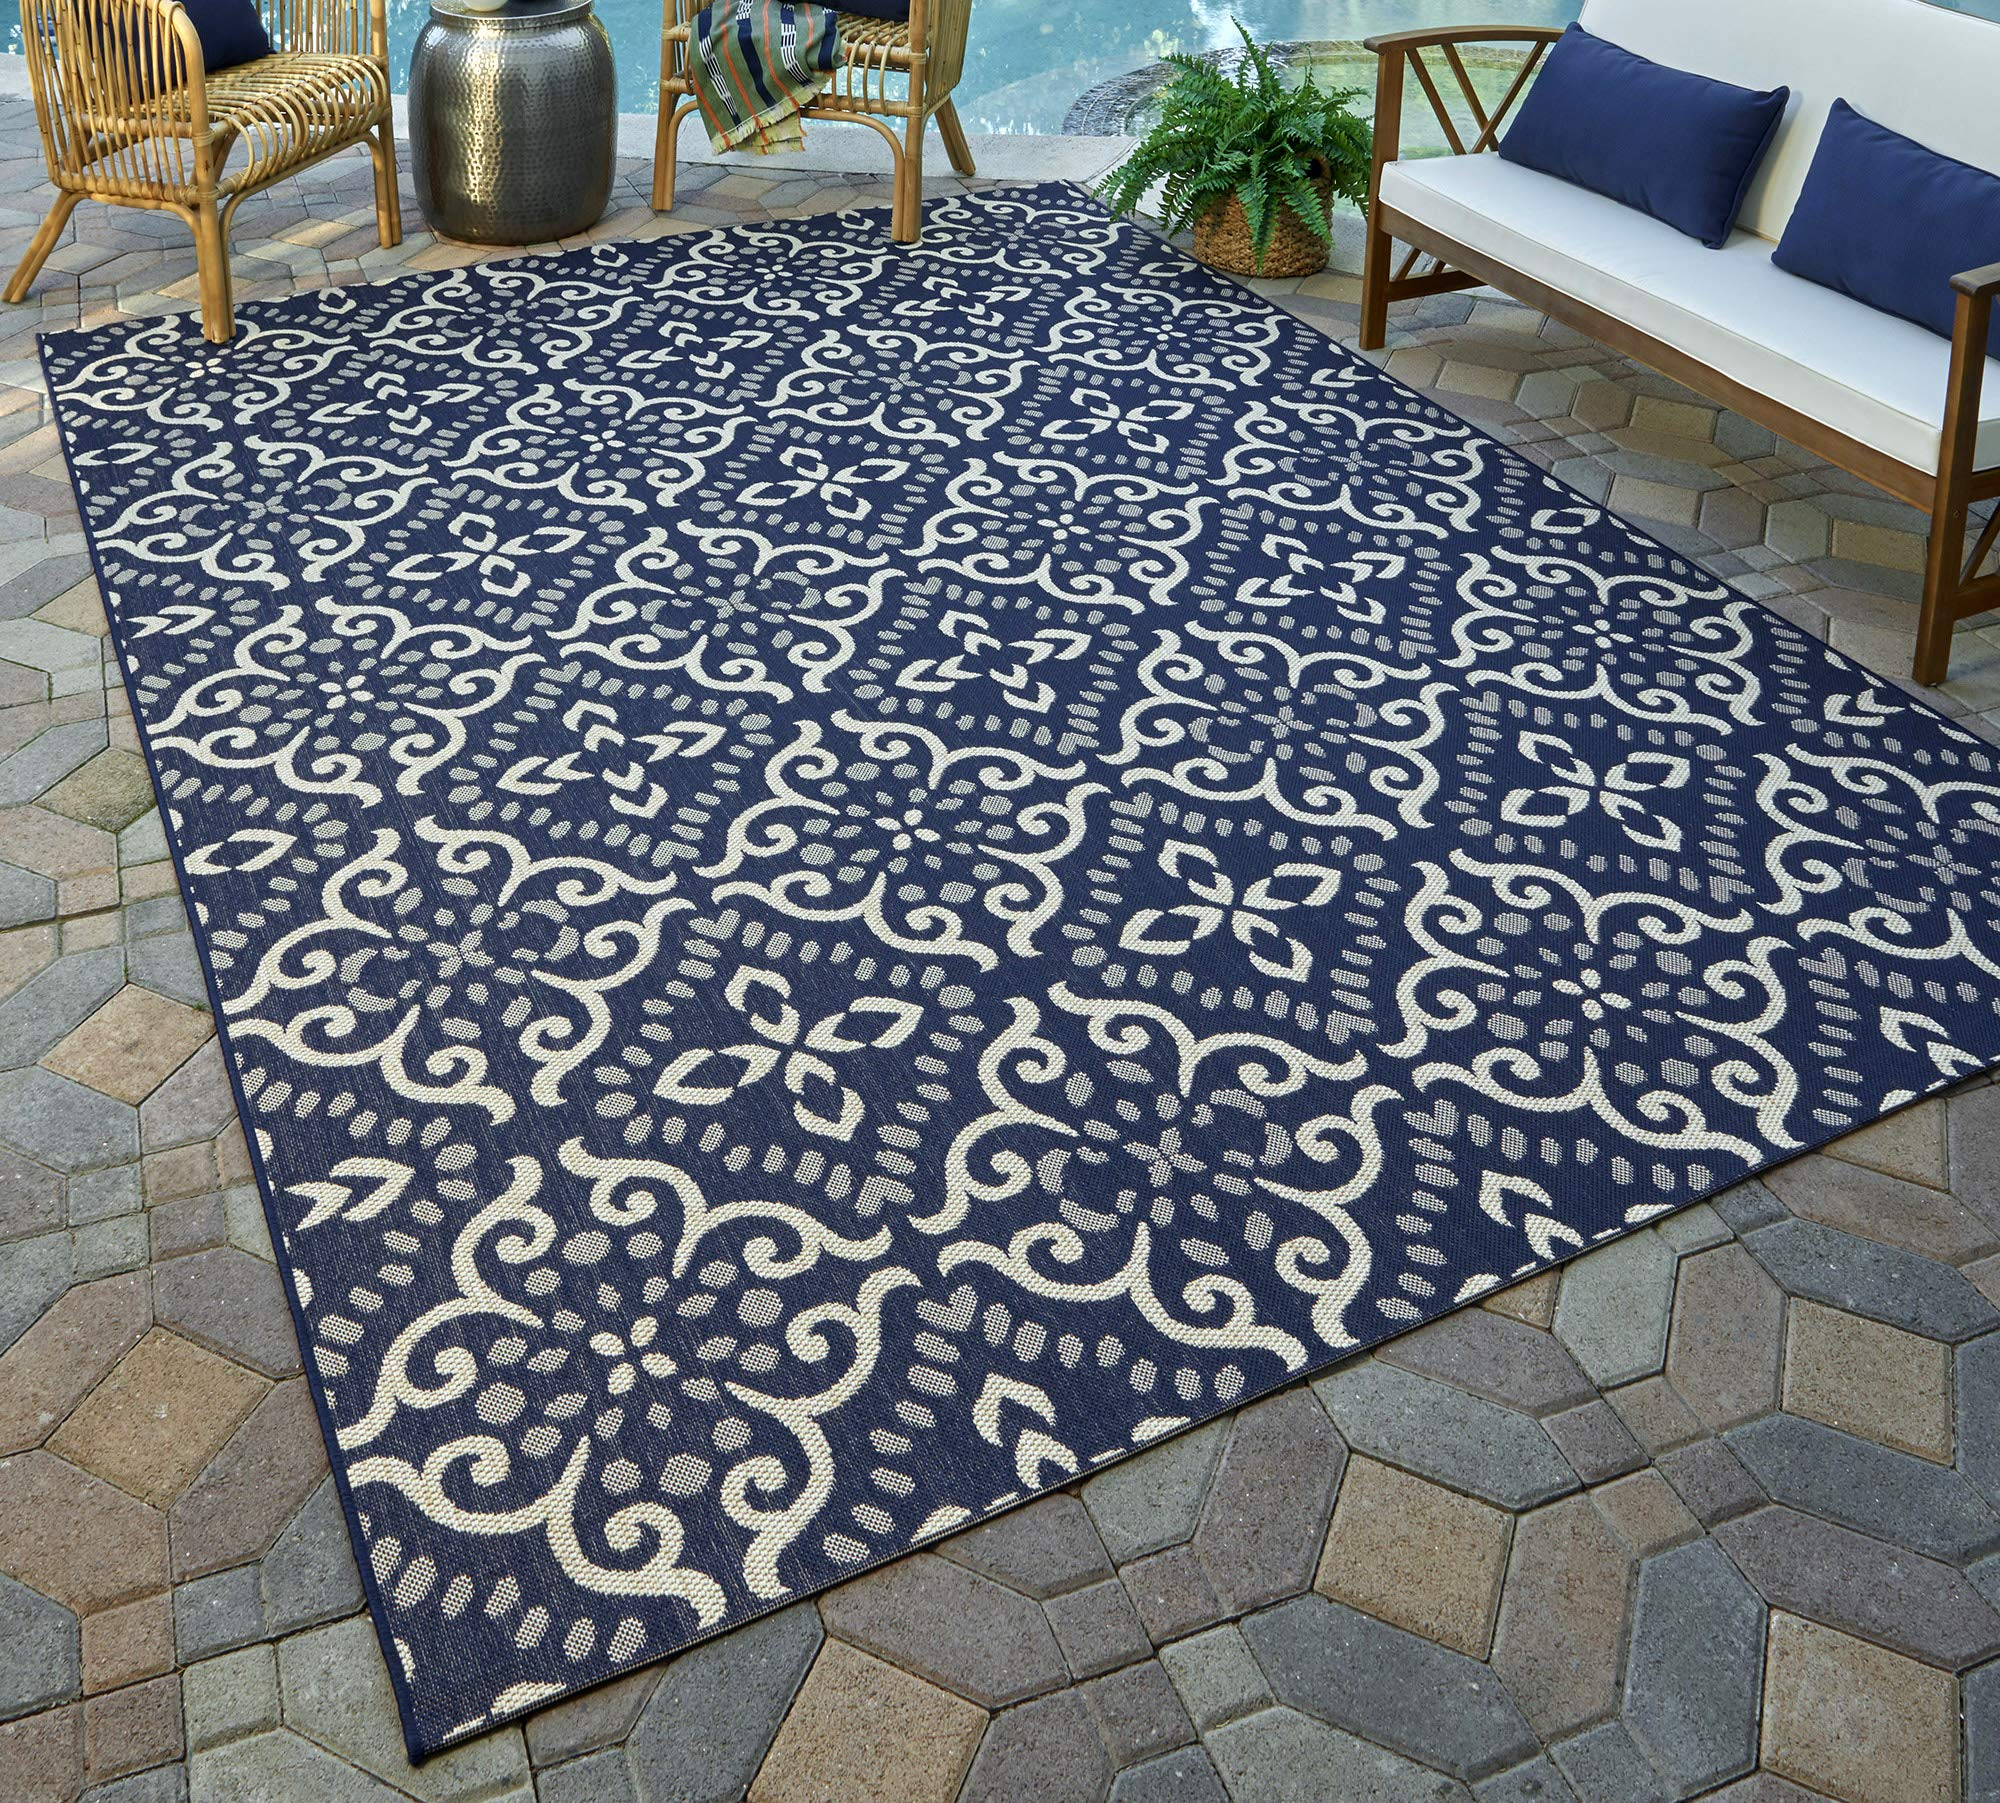 Gertmenian 21565 Nautical Tropical Carpet Outdoor Patio Rug, 5x7 Standard, Navy Floral Medallion by Gertmenian (Image #1)